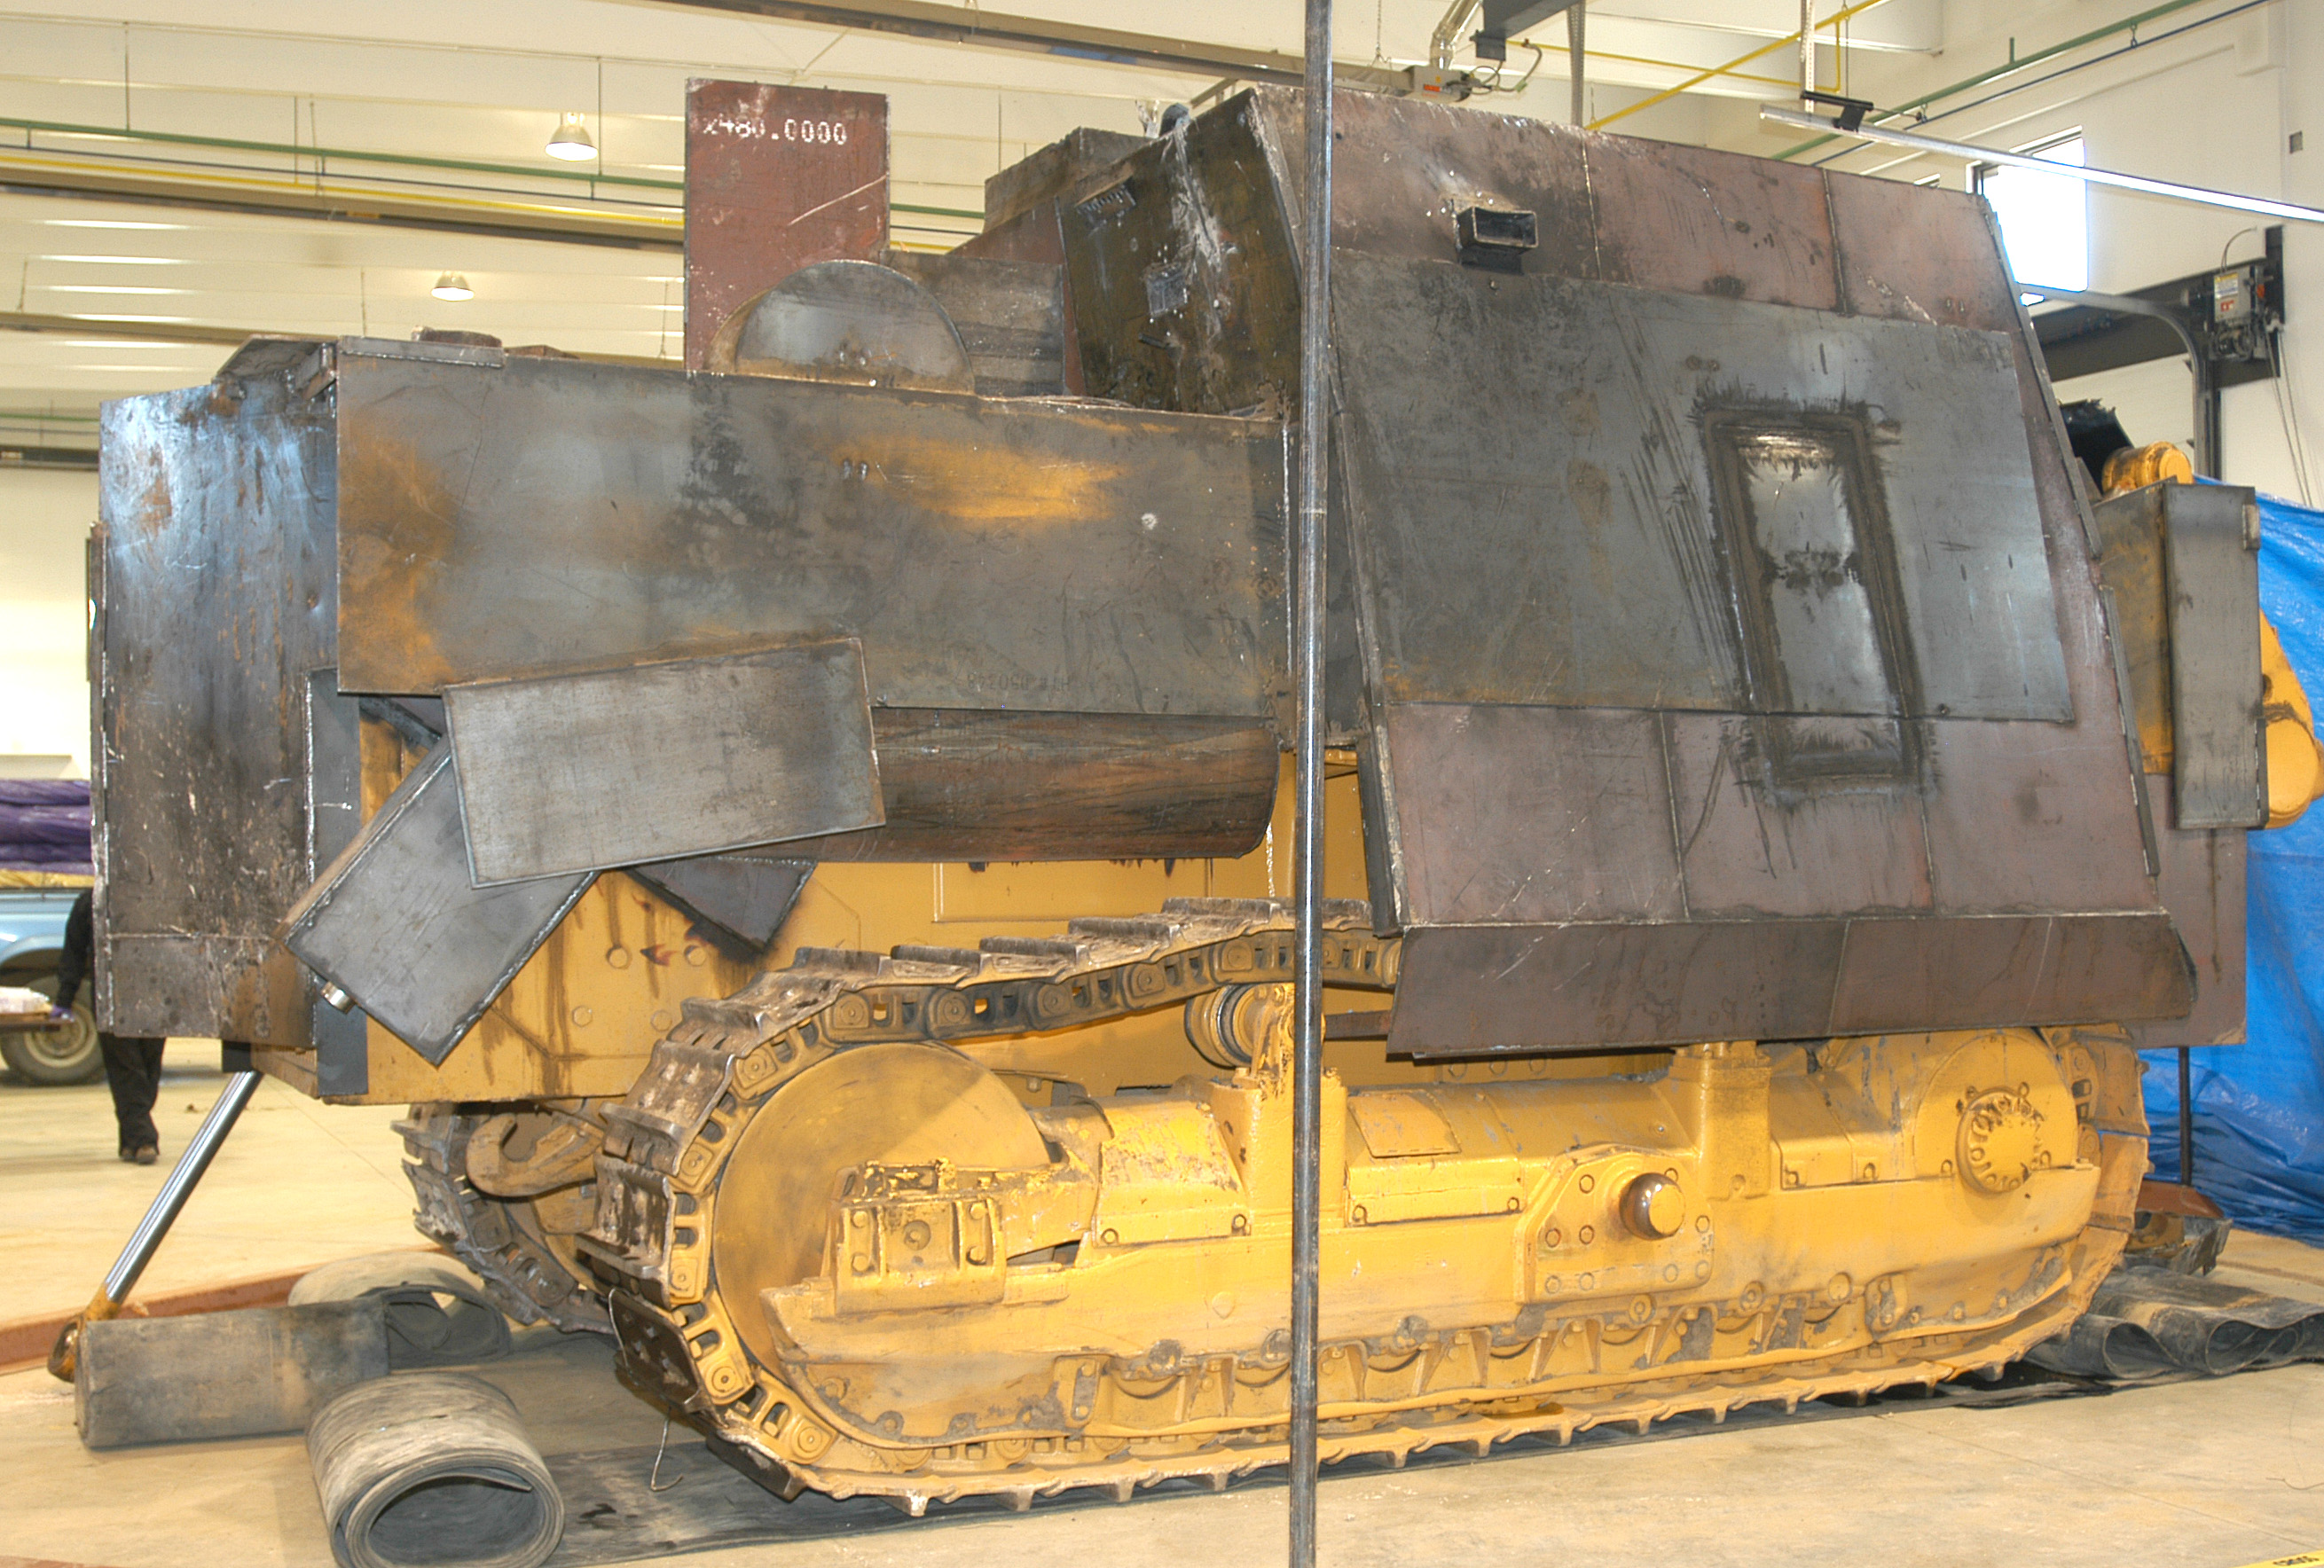 The KILLDOZER was well-armed, stopping any and all bullets fired at Marv Heemeyer's creation, which he called Marv's MK Dozer.